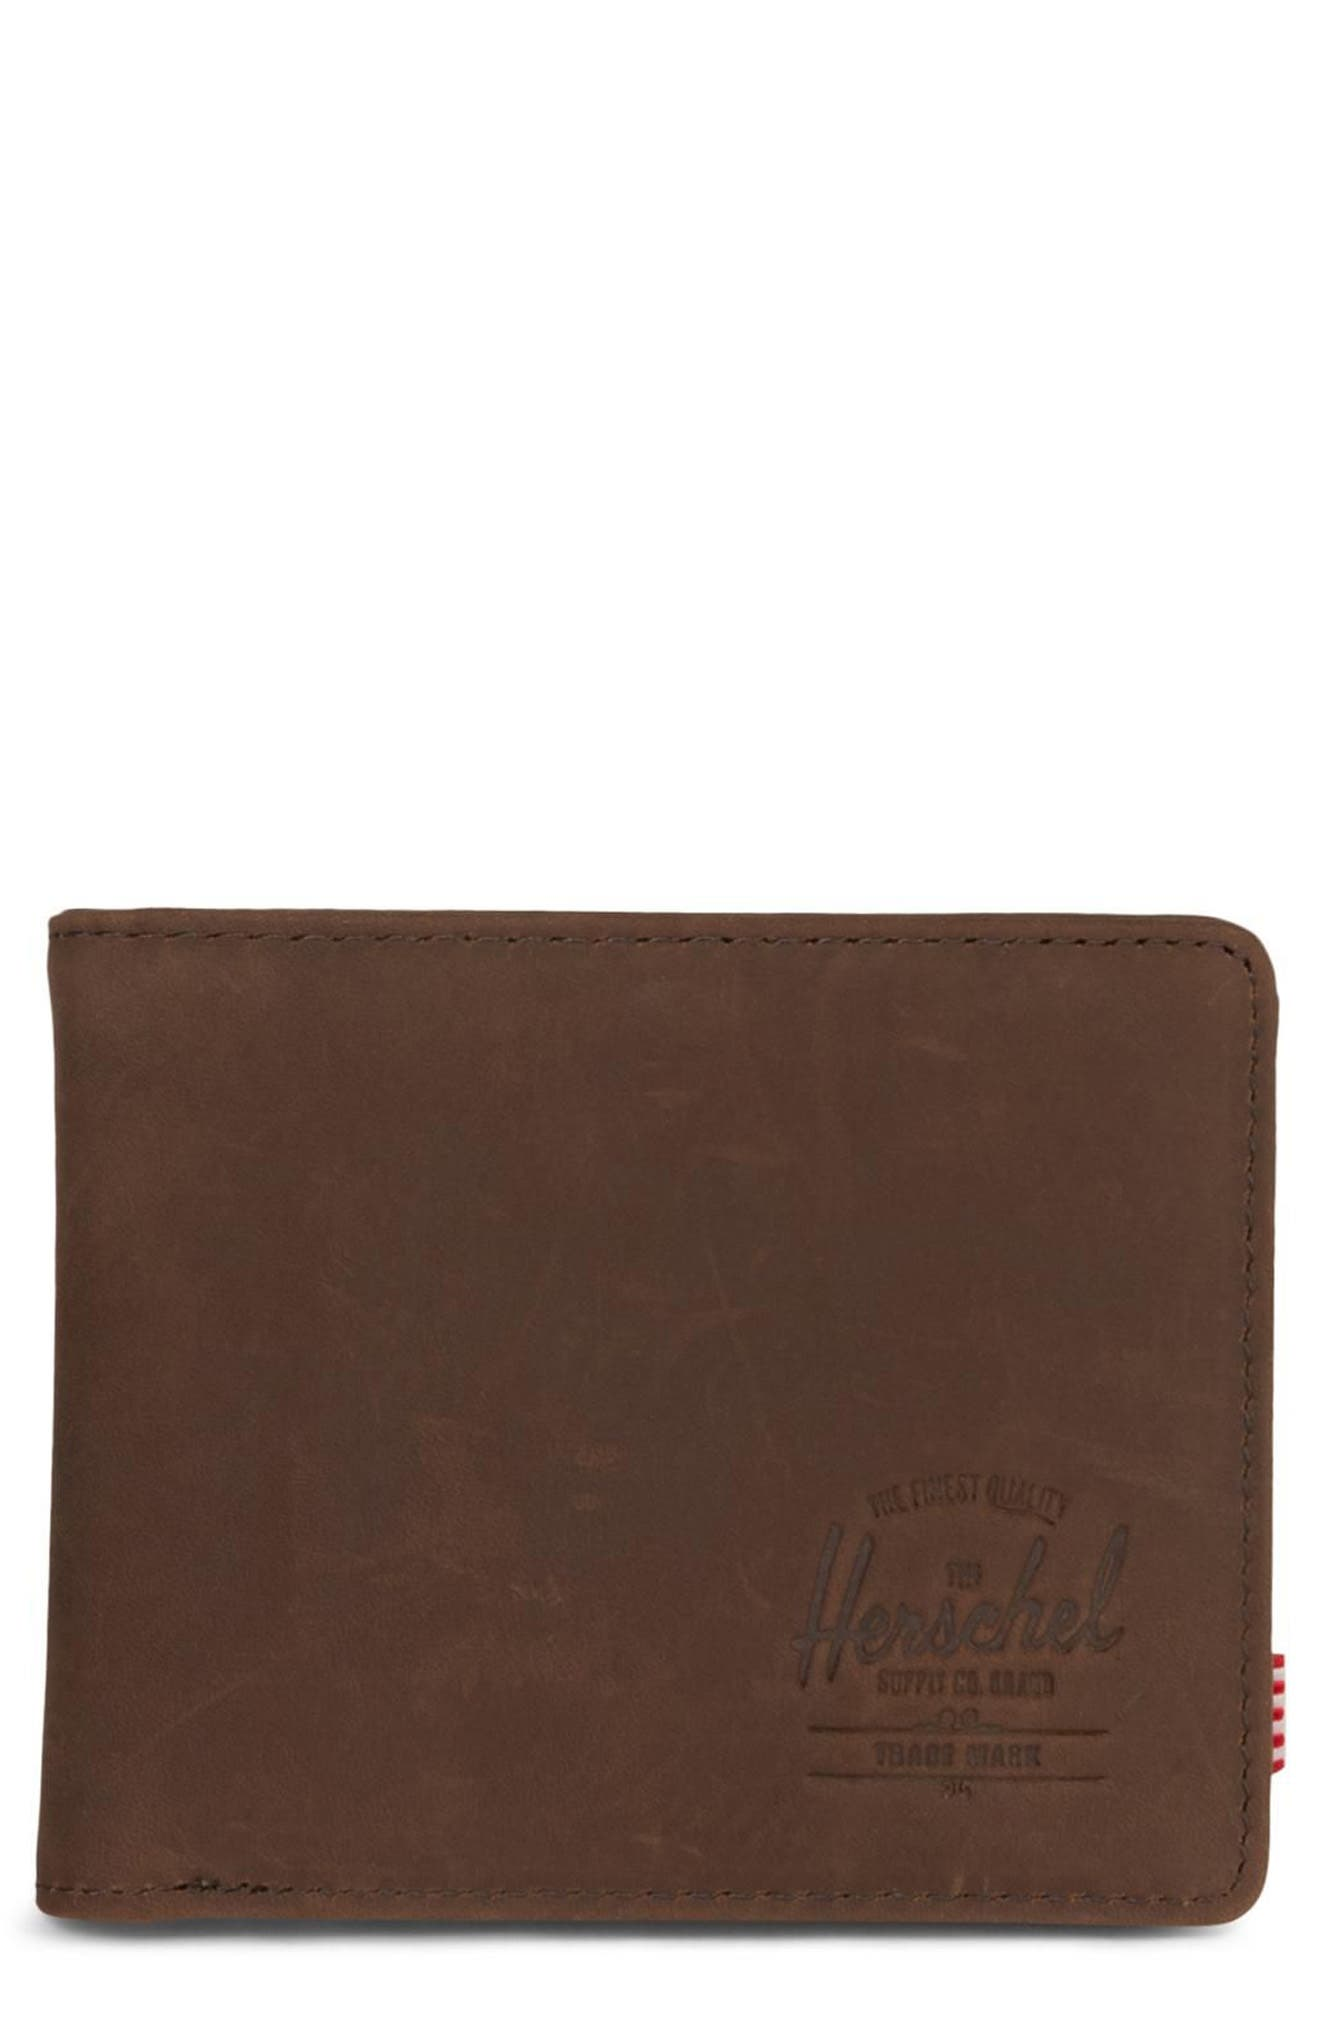 Hank Leather Wallet,                             Main thumbnail 1, color,                             NUBUCK BROWN